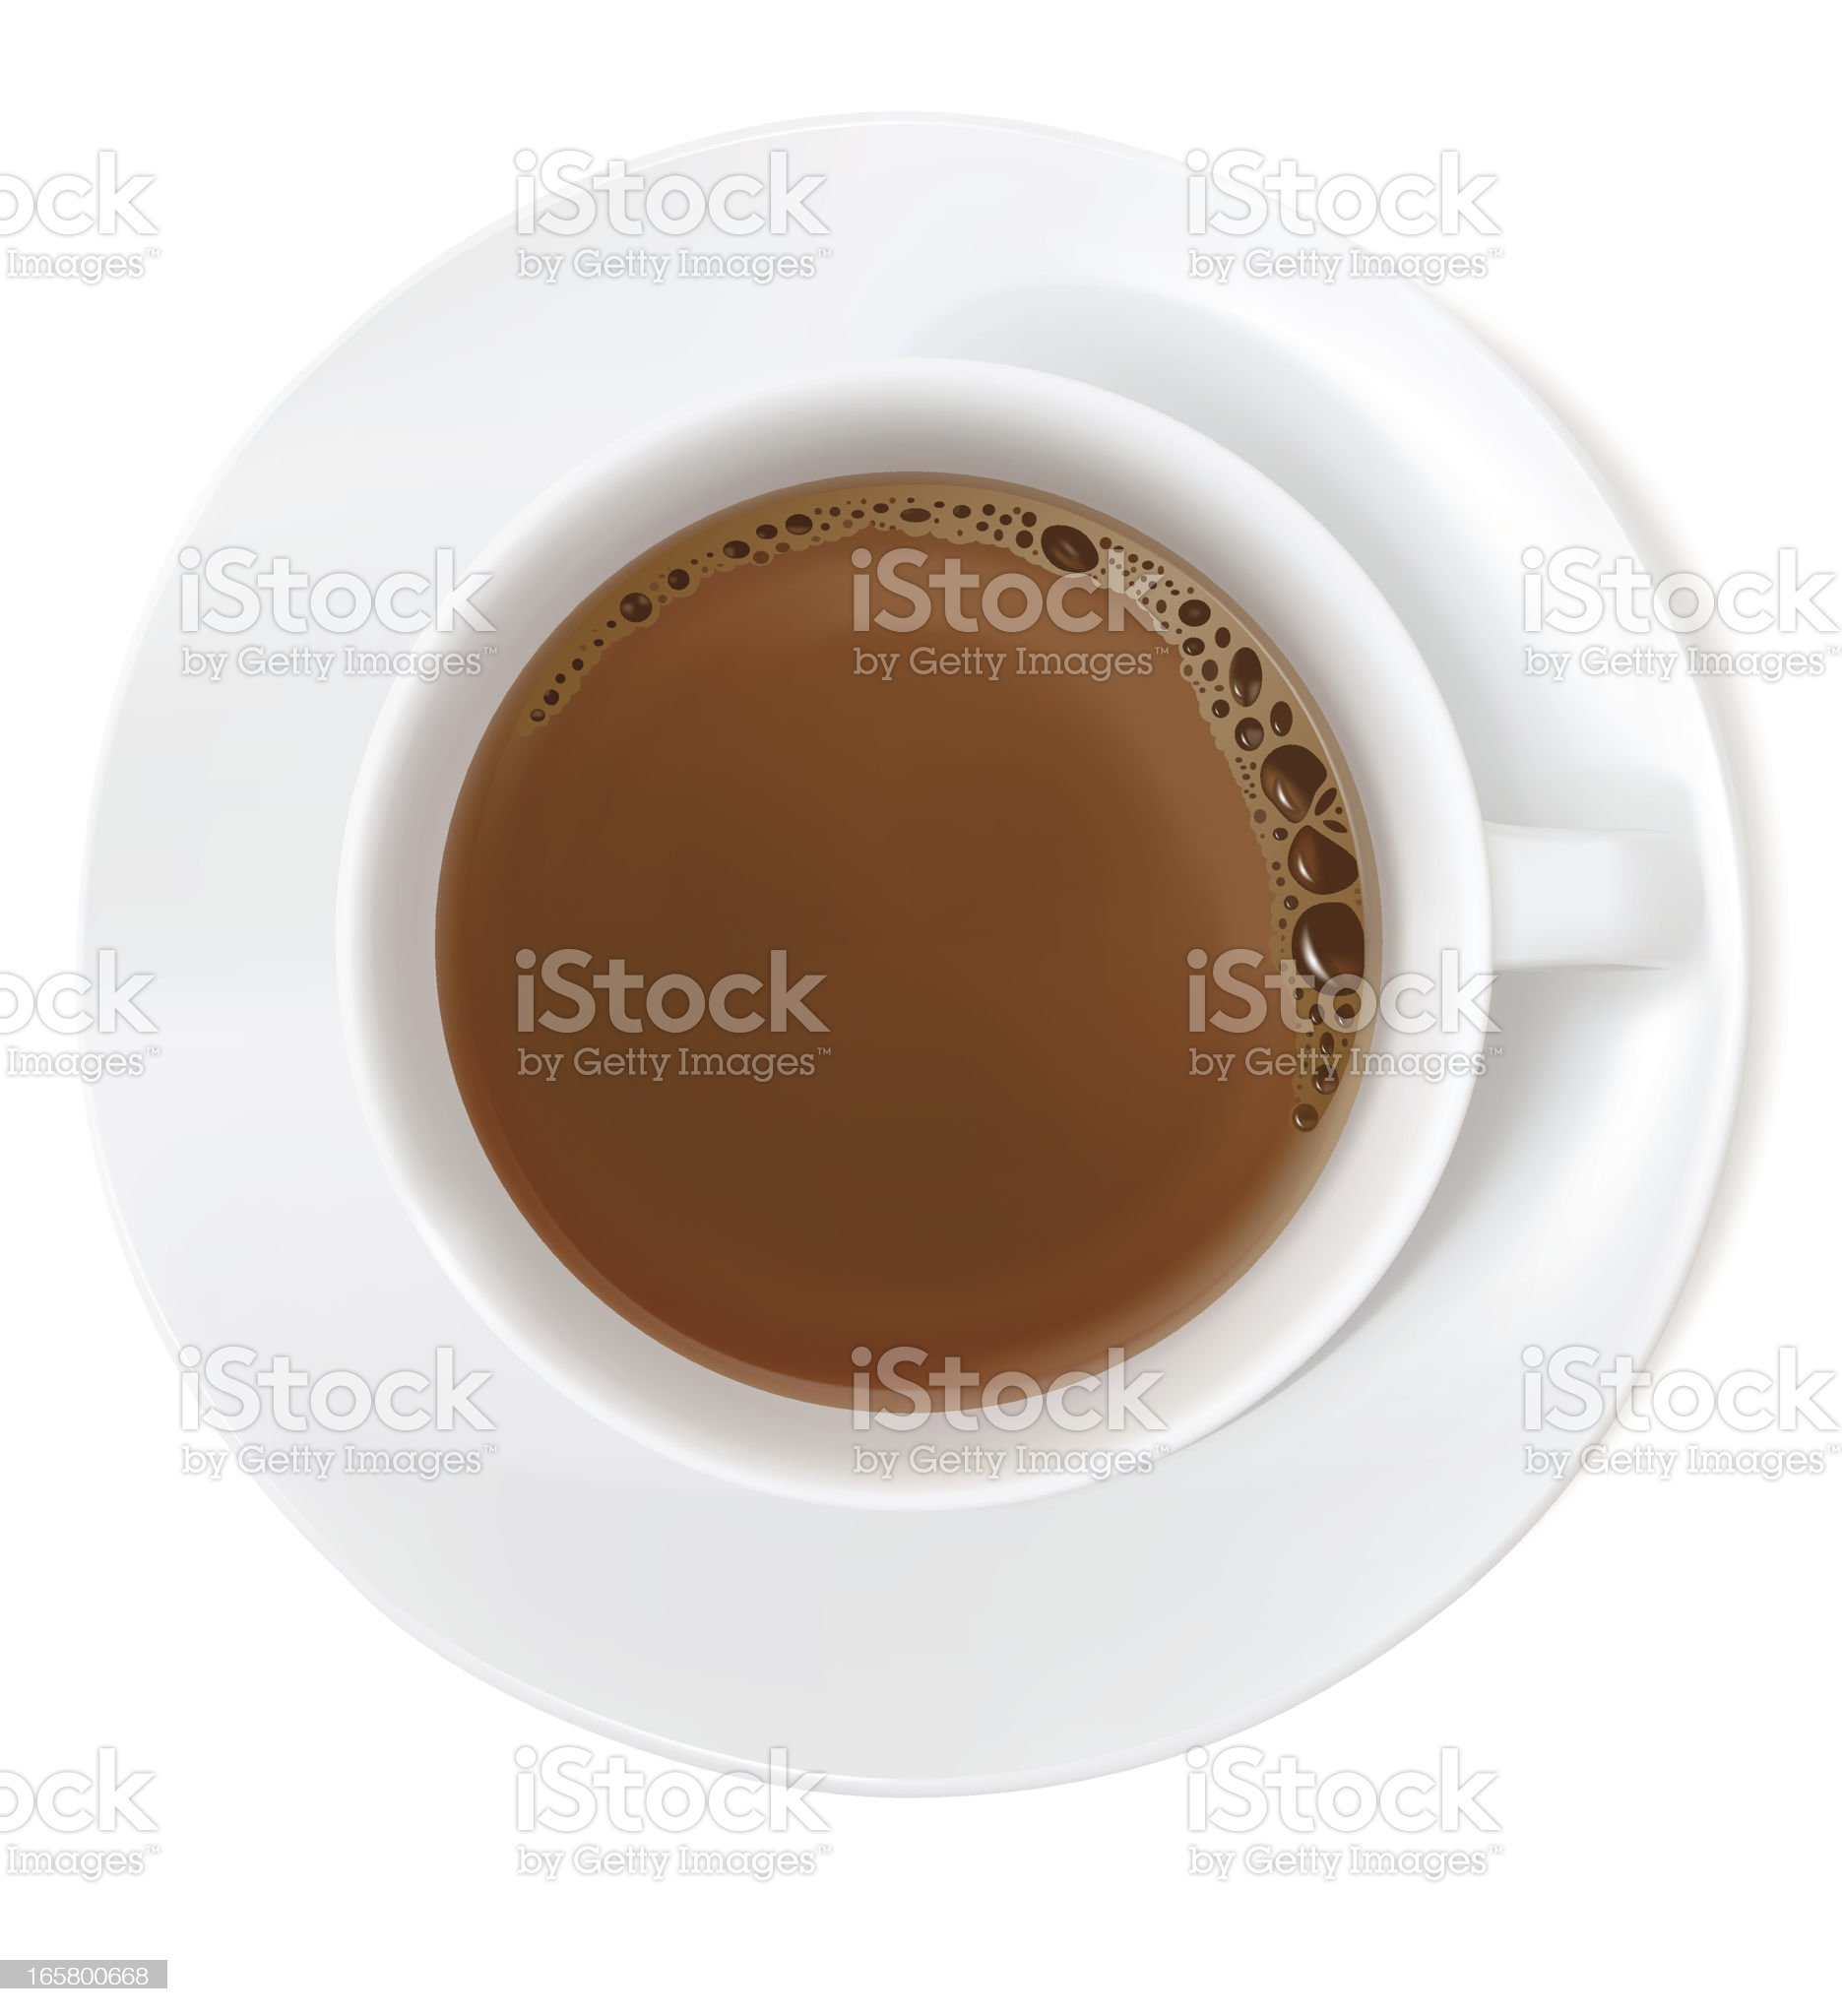 Coffee - Vector Illustration royalty-free stock vector art